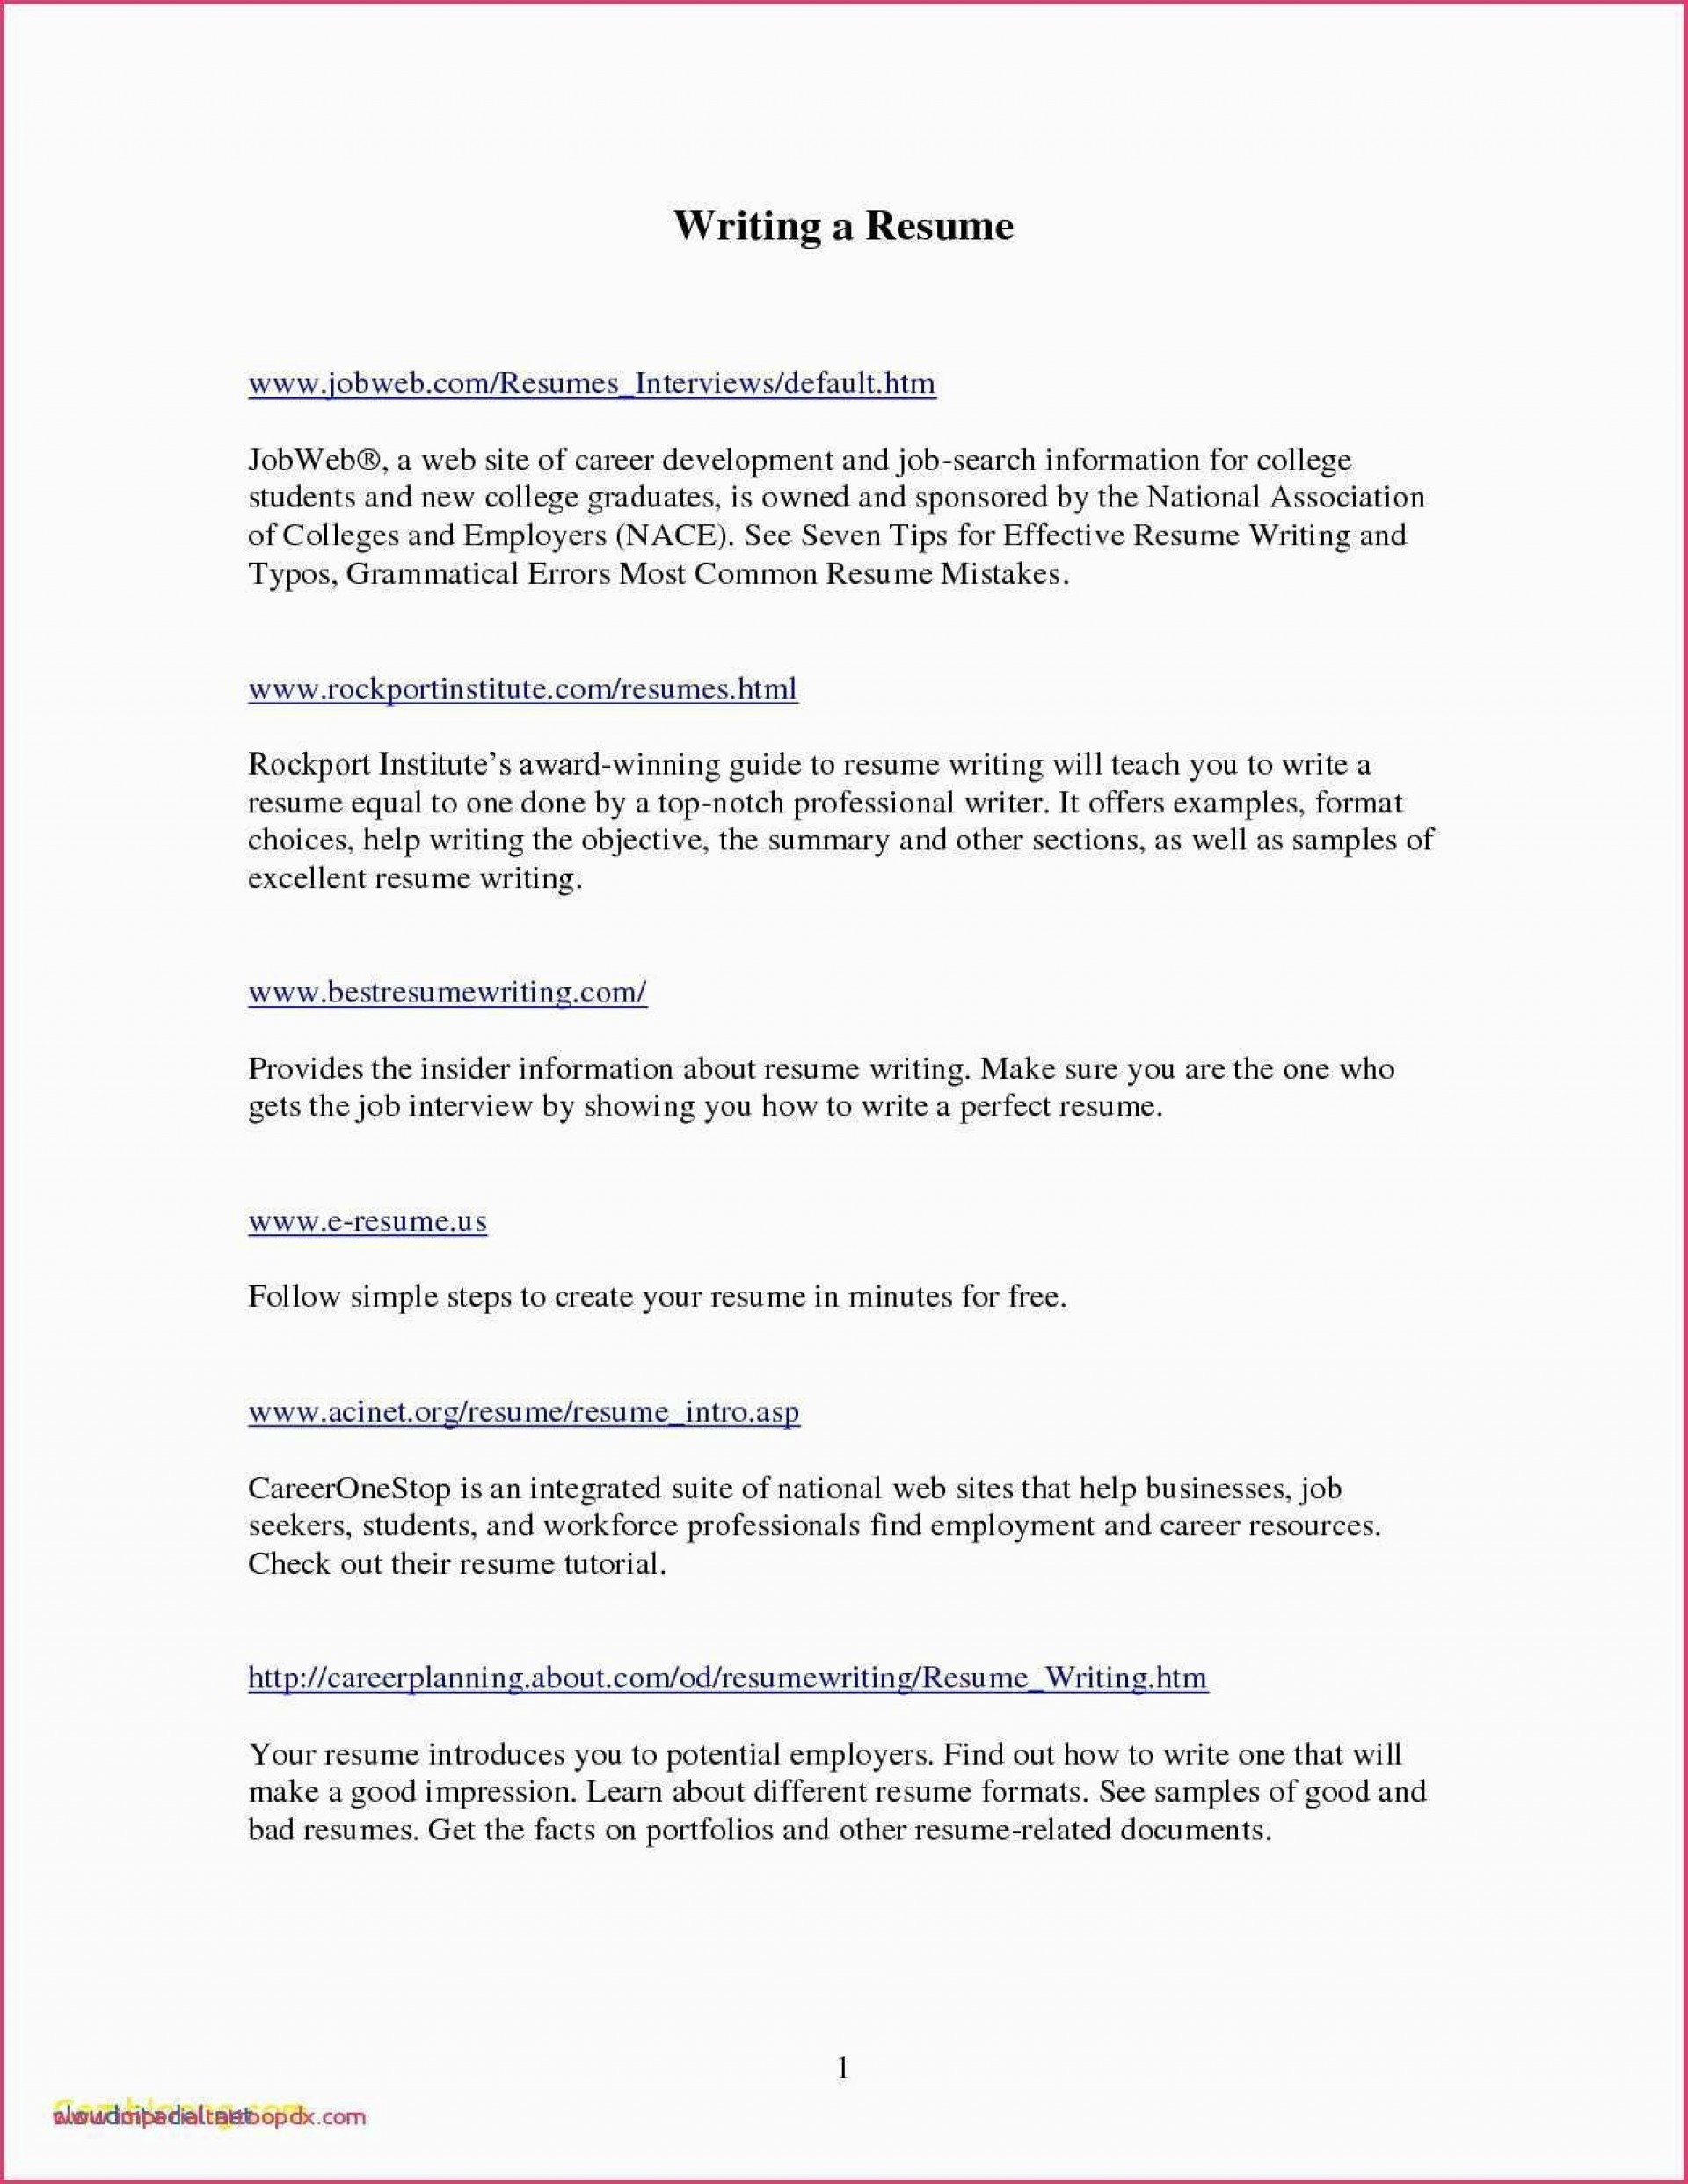 014 Apa Career Research Paper Sample Letter Format Template New Formal Outline Mla Exceptional 1920